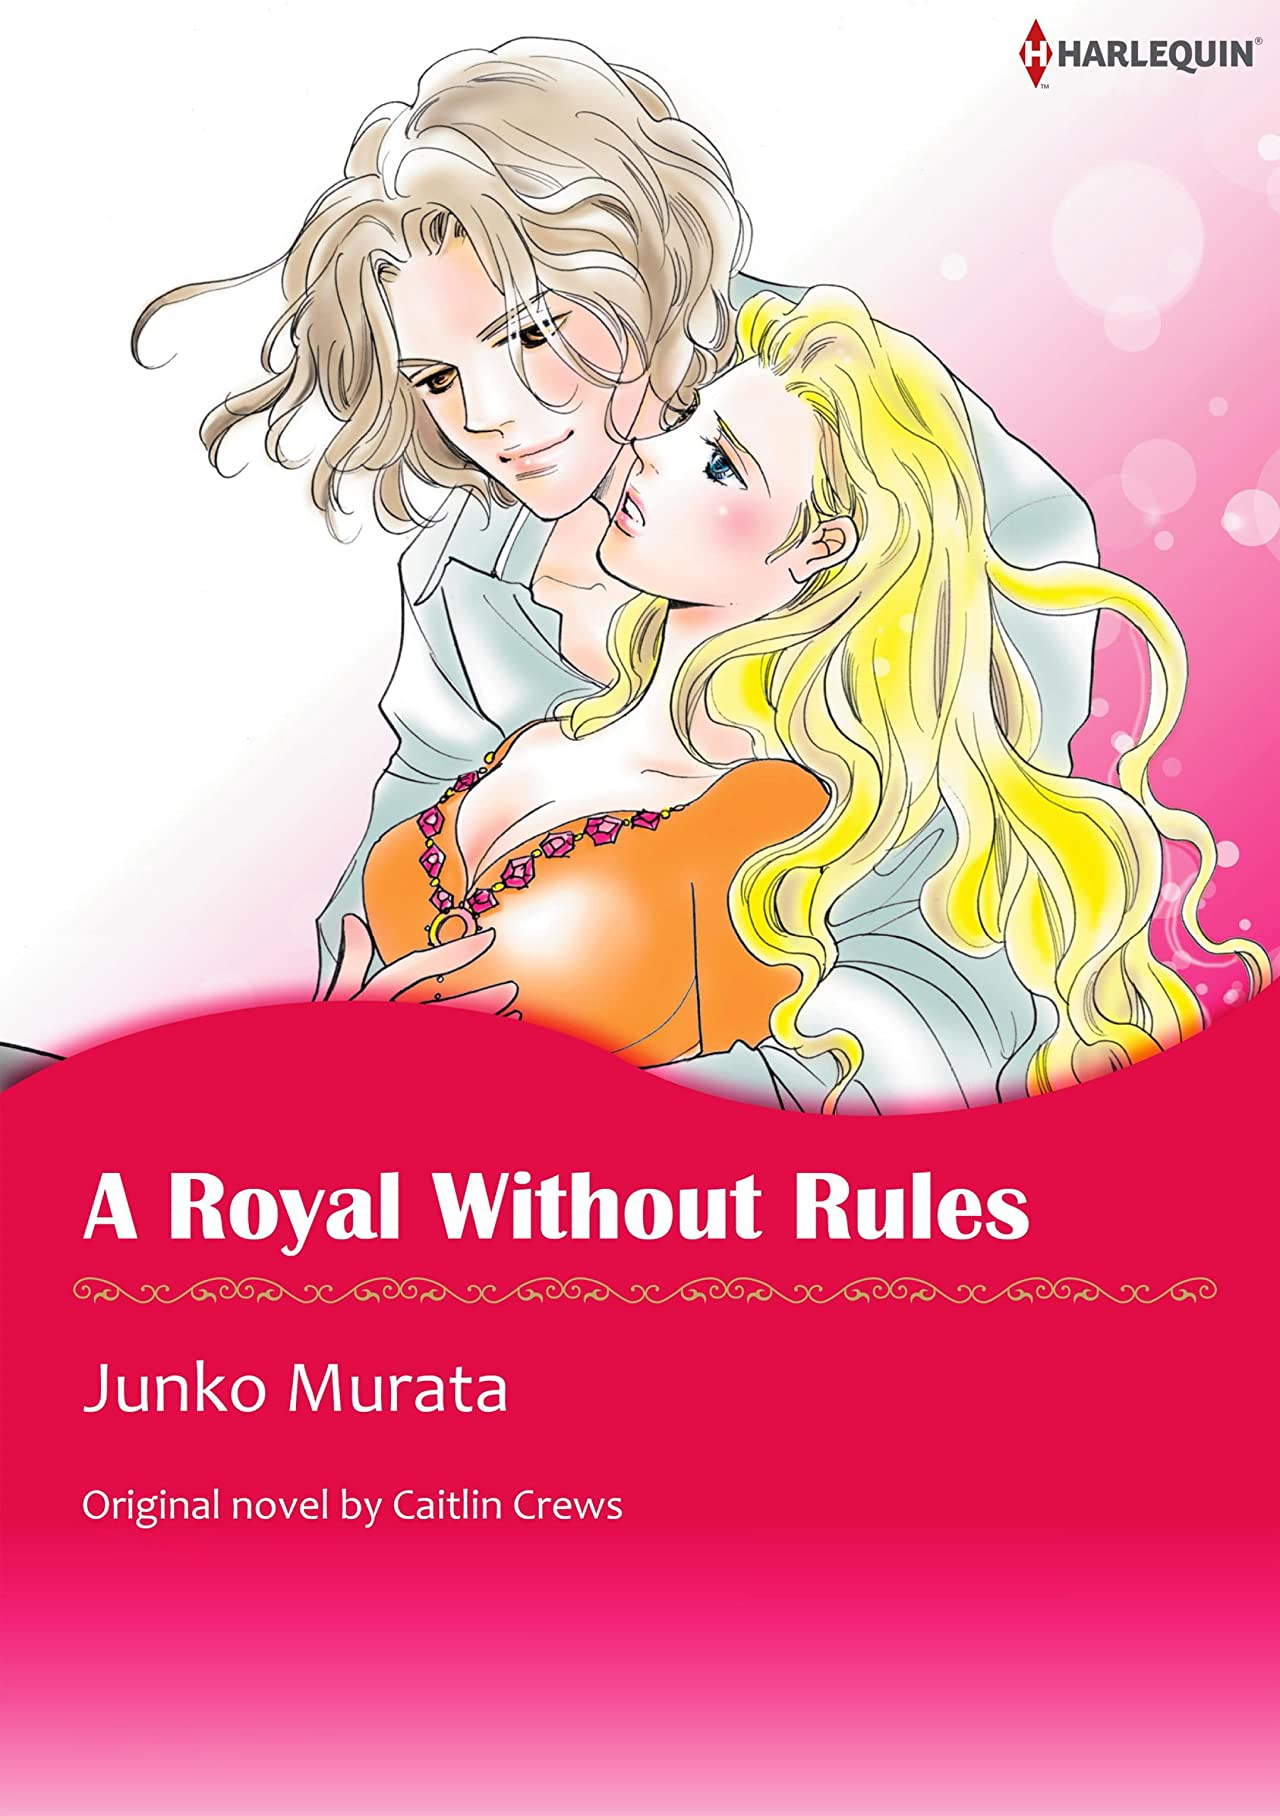 A Royal Without Rules